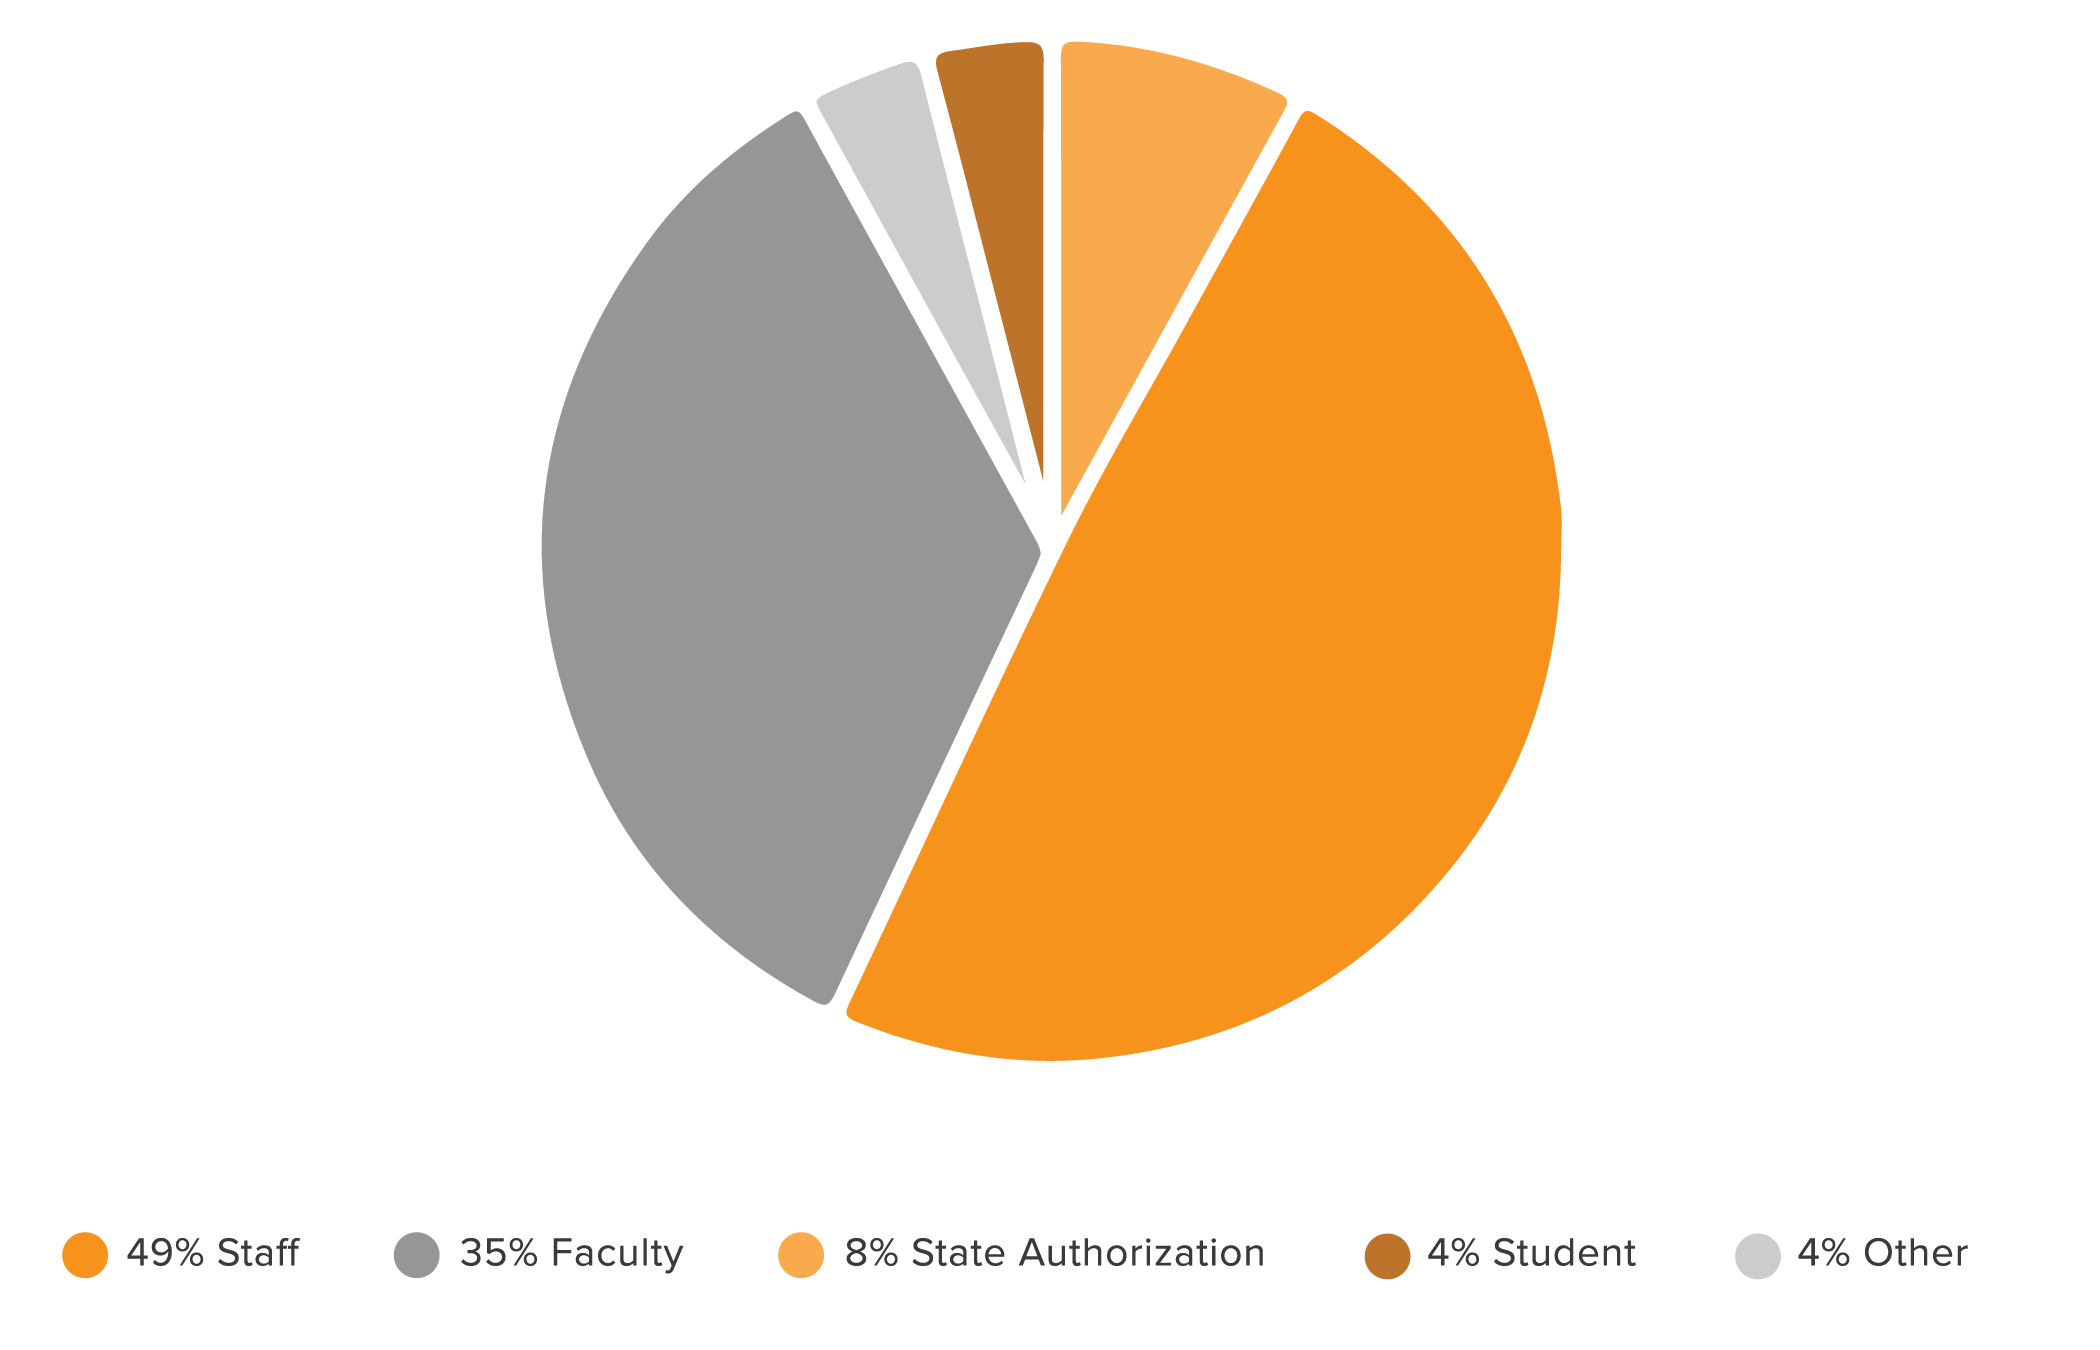 Pie graph of attendee numbers - 49% Staff, 35% Faculty, 8% State Authorization, 4% Students, 4% Other